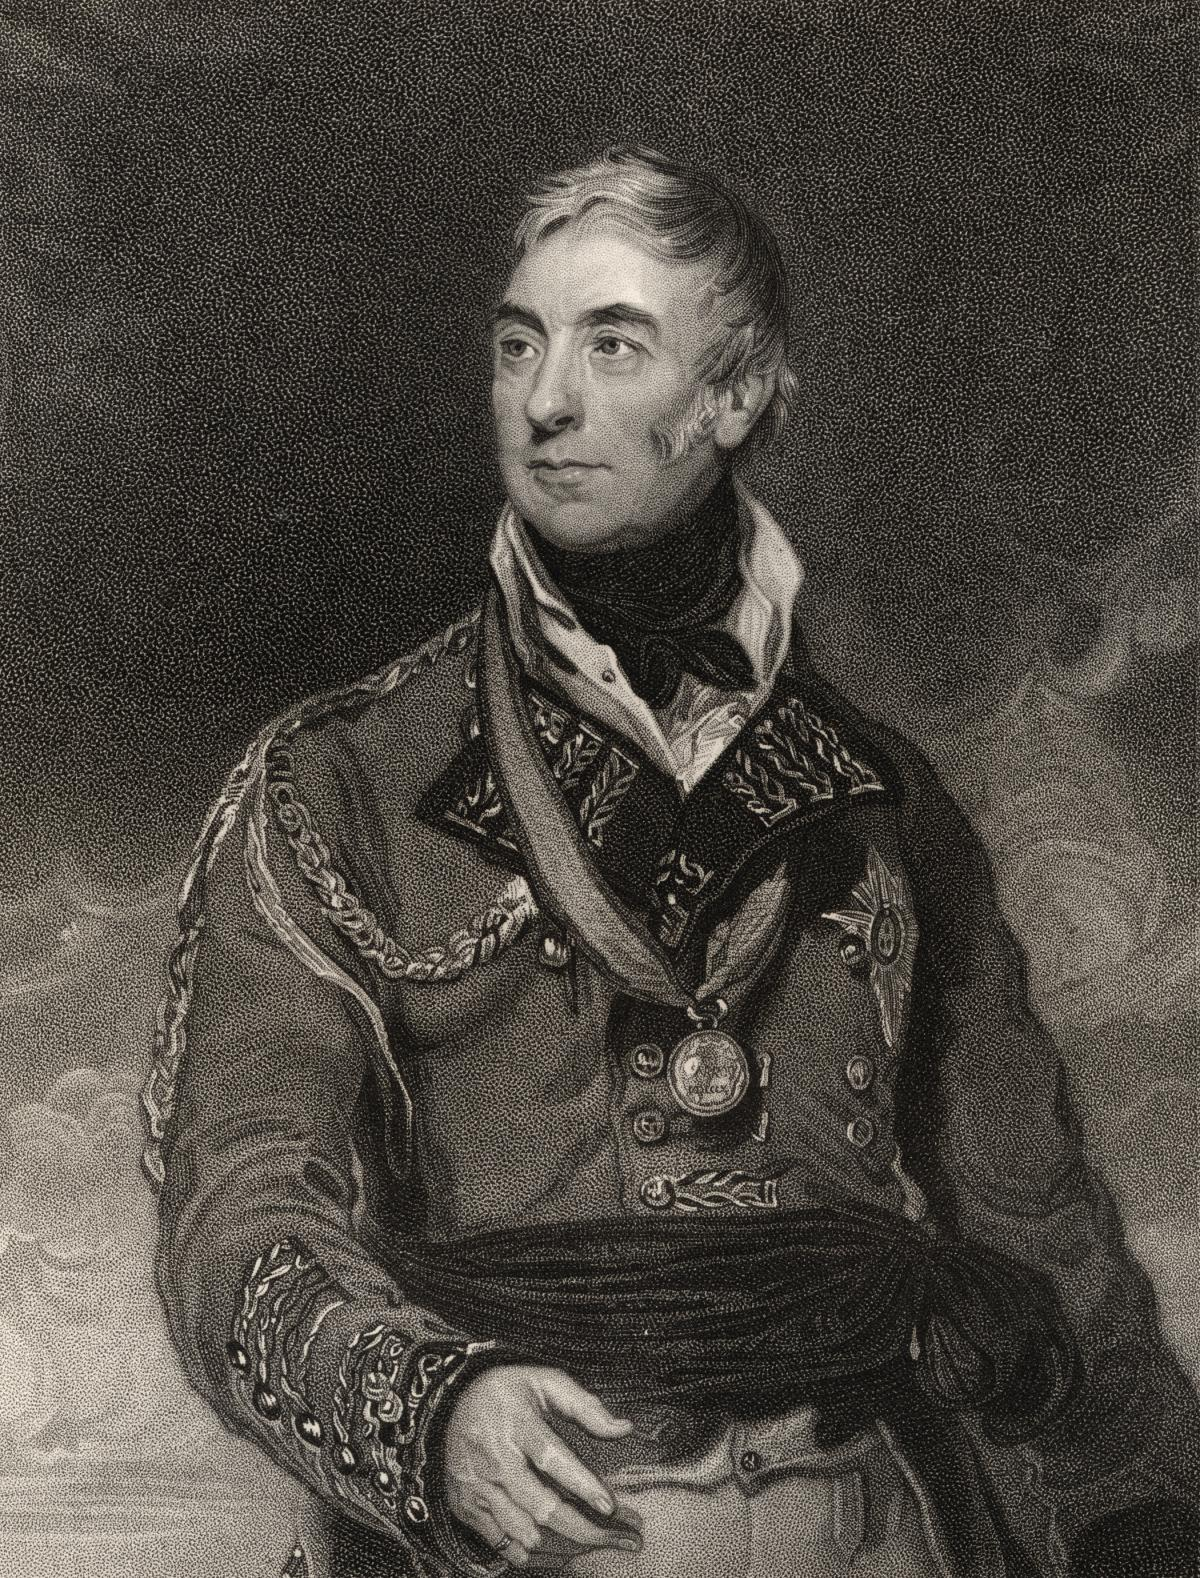 Black and white engraving of the general, wearing a military coat and a medal around his neck, looking off to his right